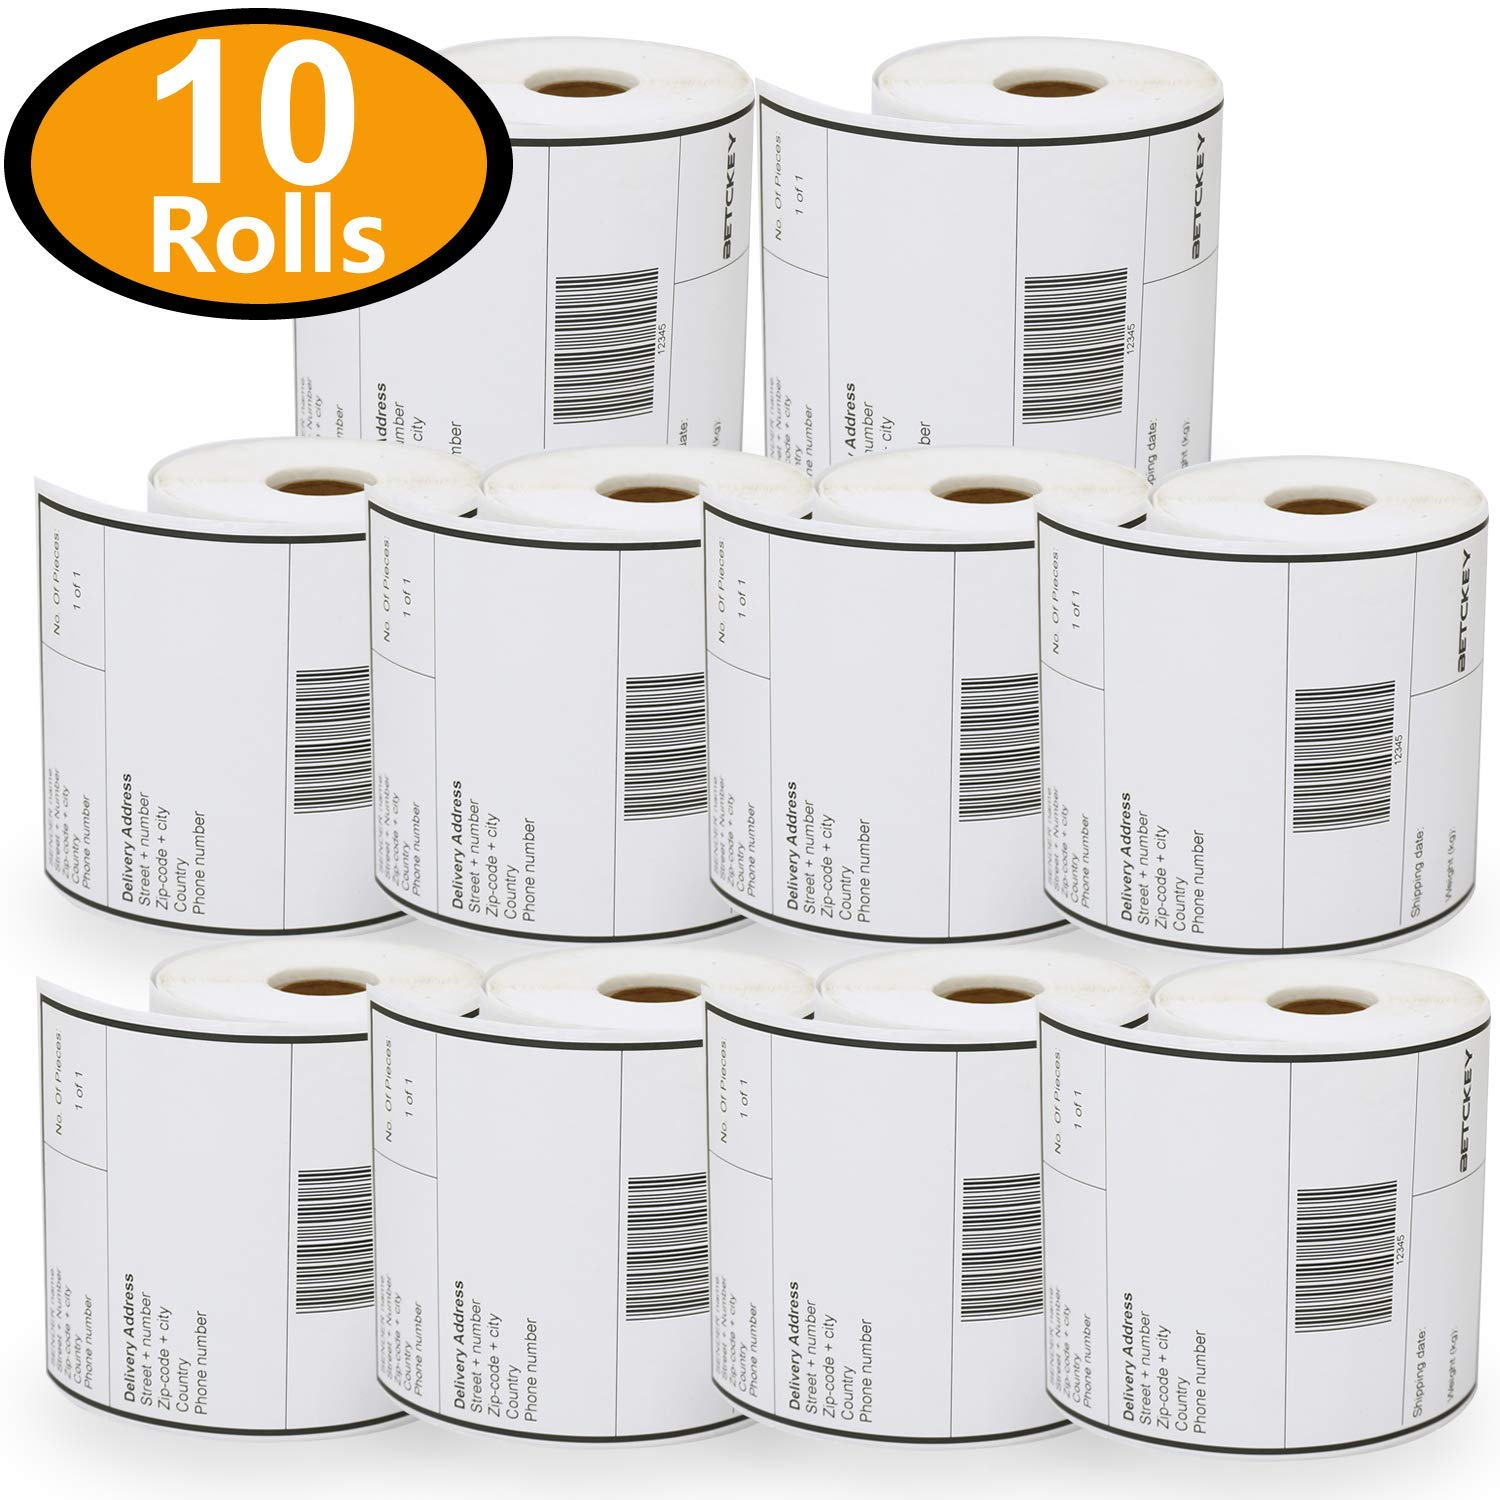 10 Rolls Dymo 1744907 Compatible 4XL Internet Postage Extra-Large 4'' x 6'' Shipping Labels, Strong Permanent Adhesive, Perforated by BETCKEY